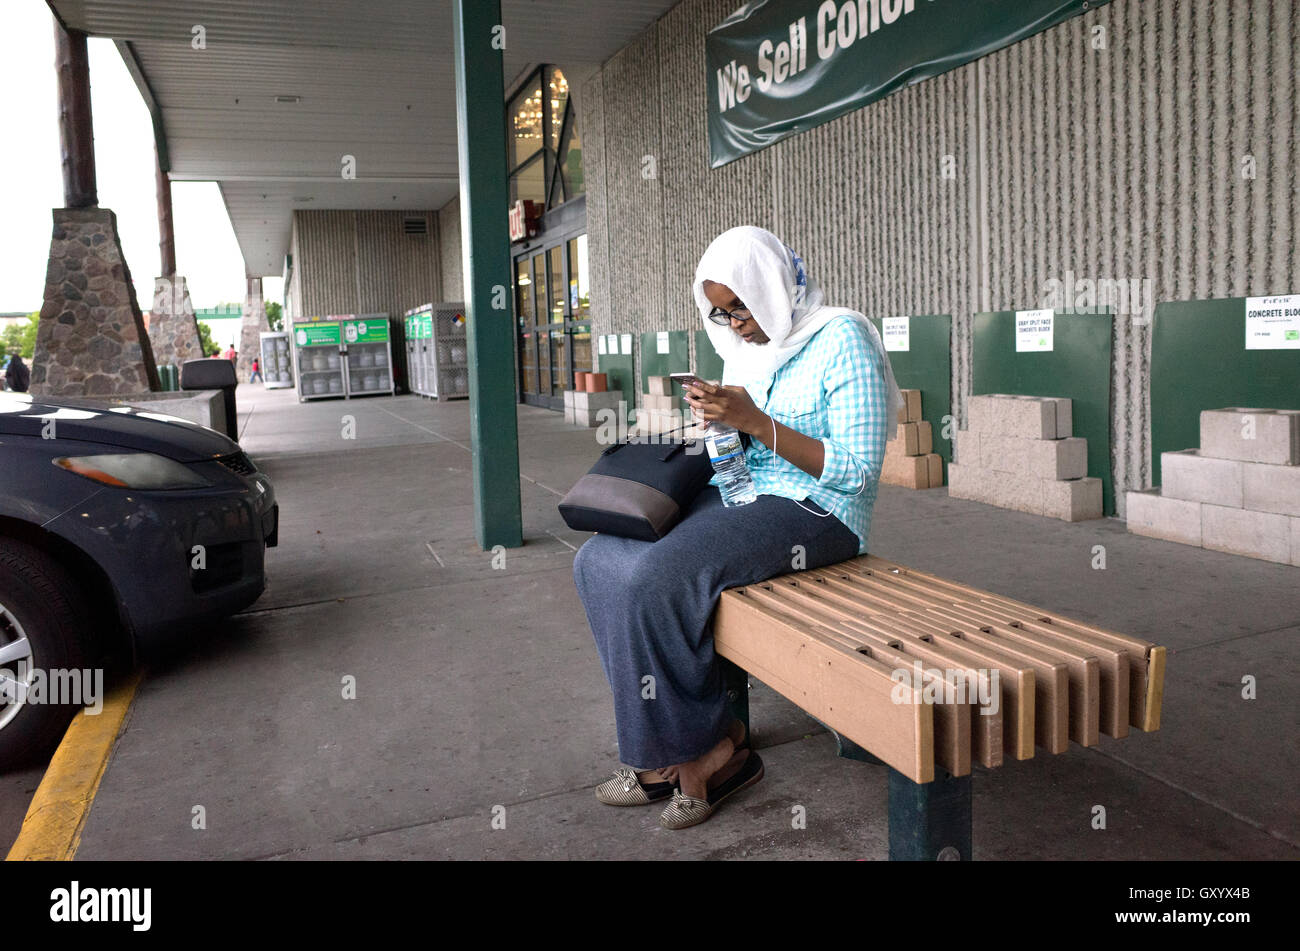 Muslim woman wearing a hijab working her cell phone on a